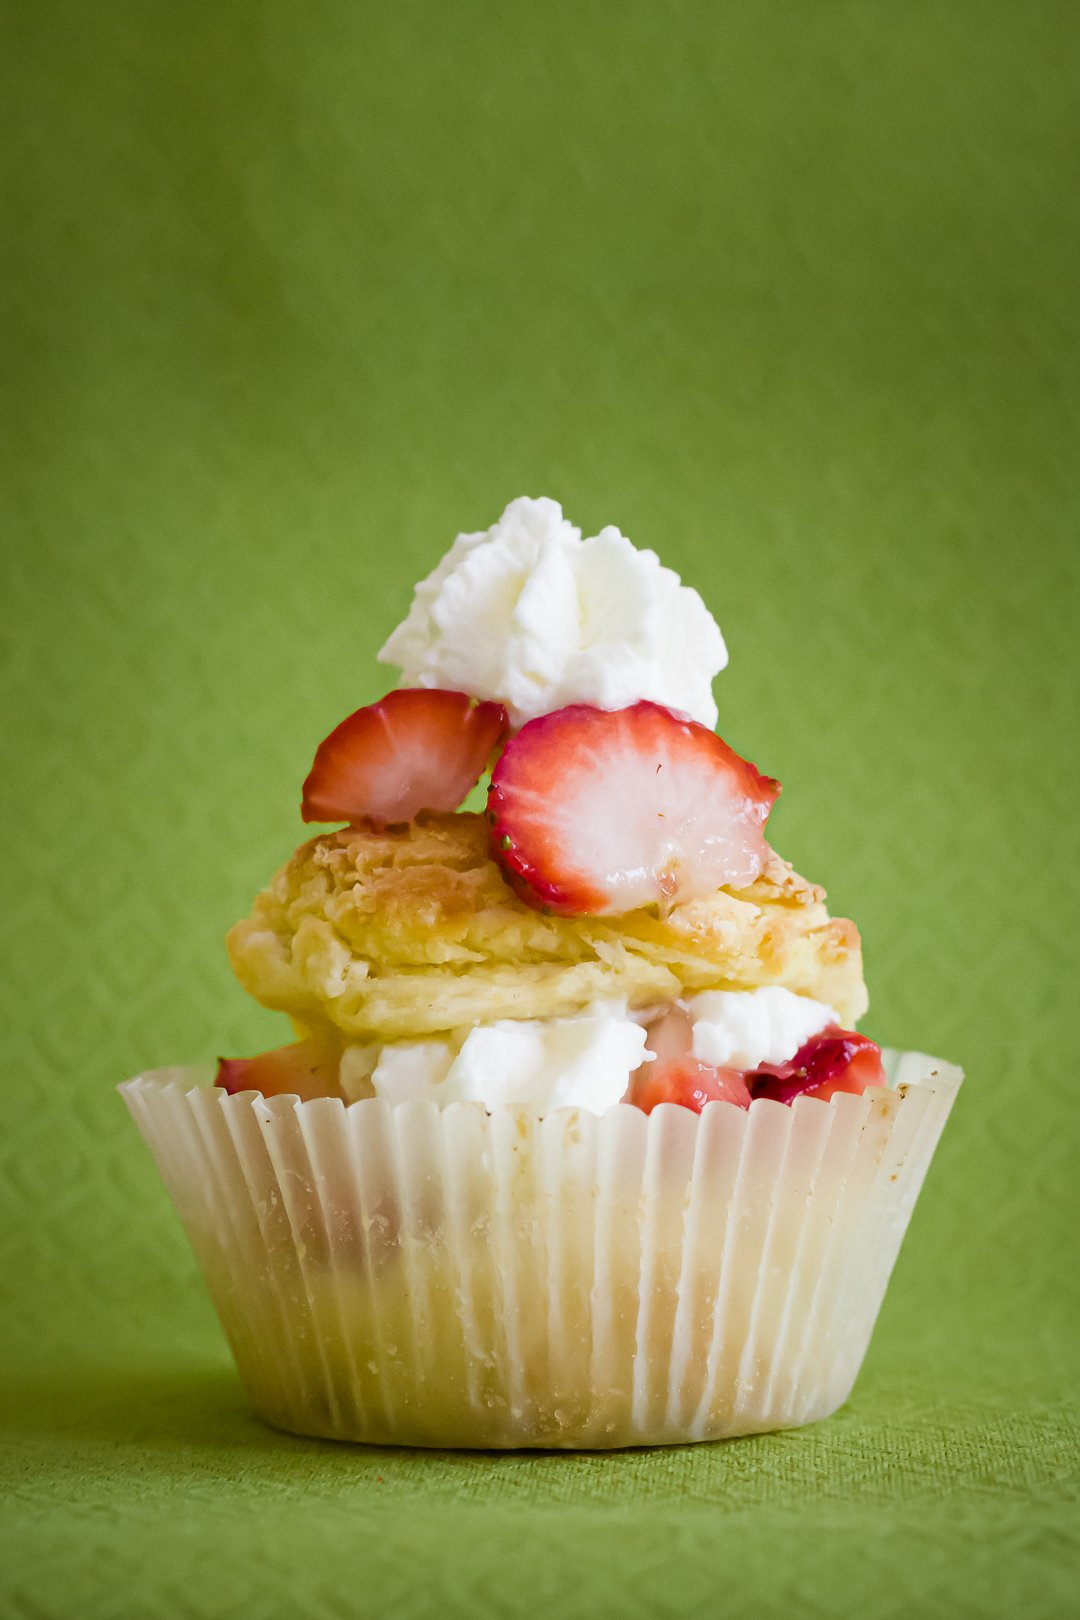 Strawberry Shortcake Cupcakes with Balsamic Whipped Cream